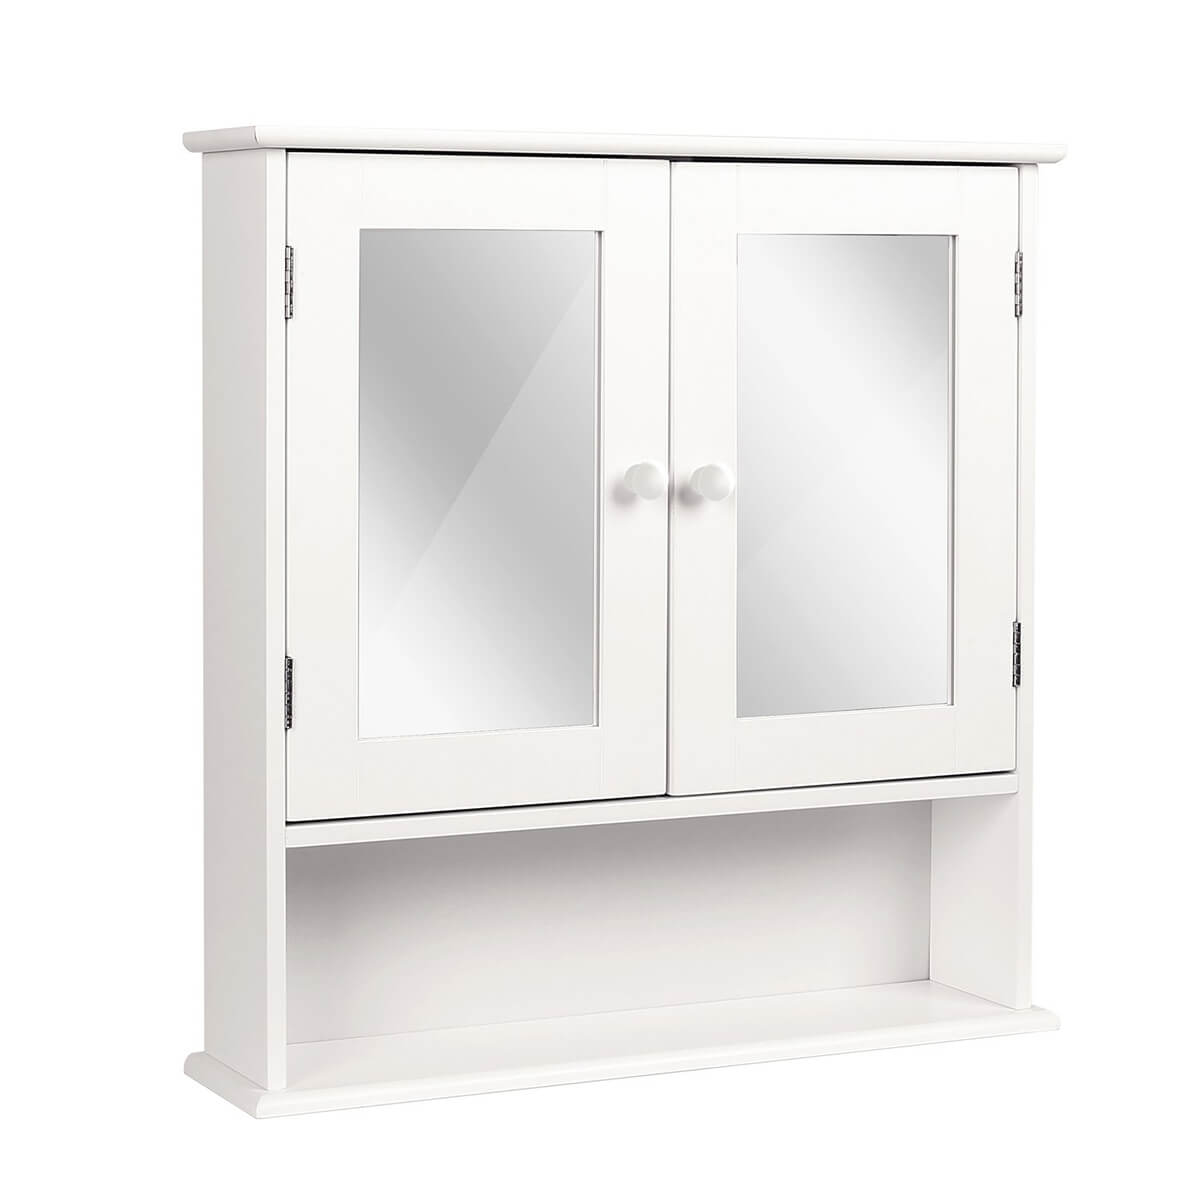 Medicine Cabinet with Mirrored Drawers